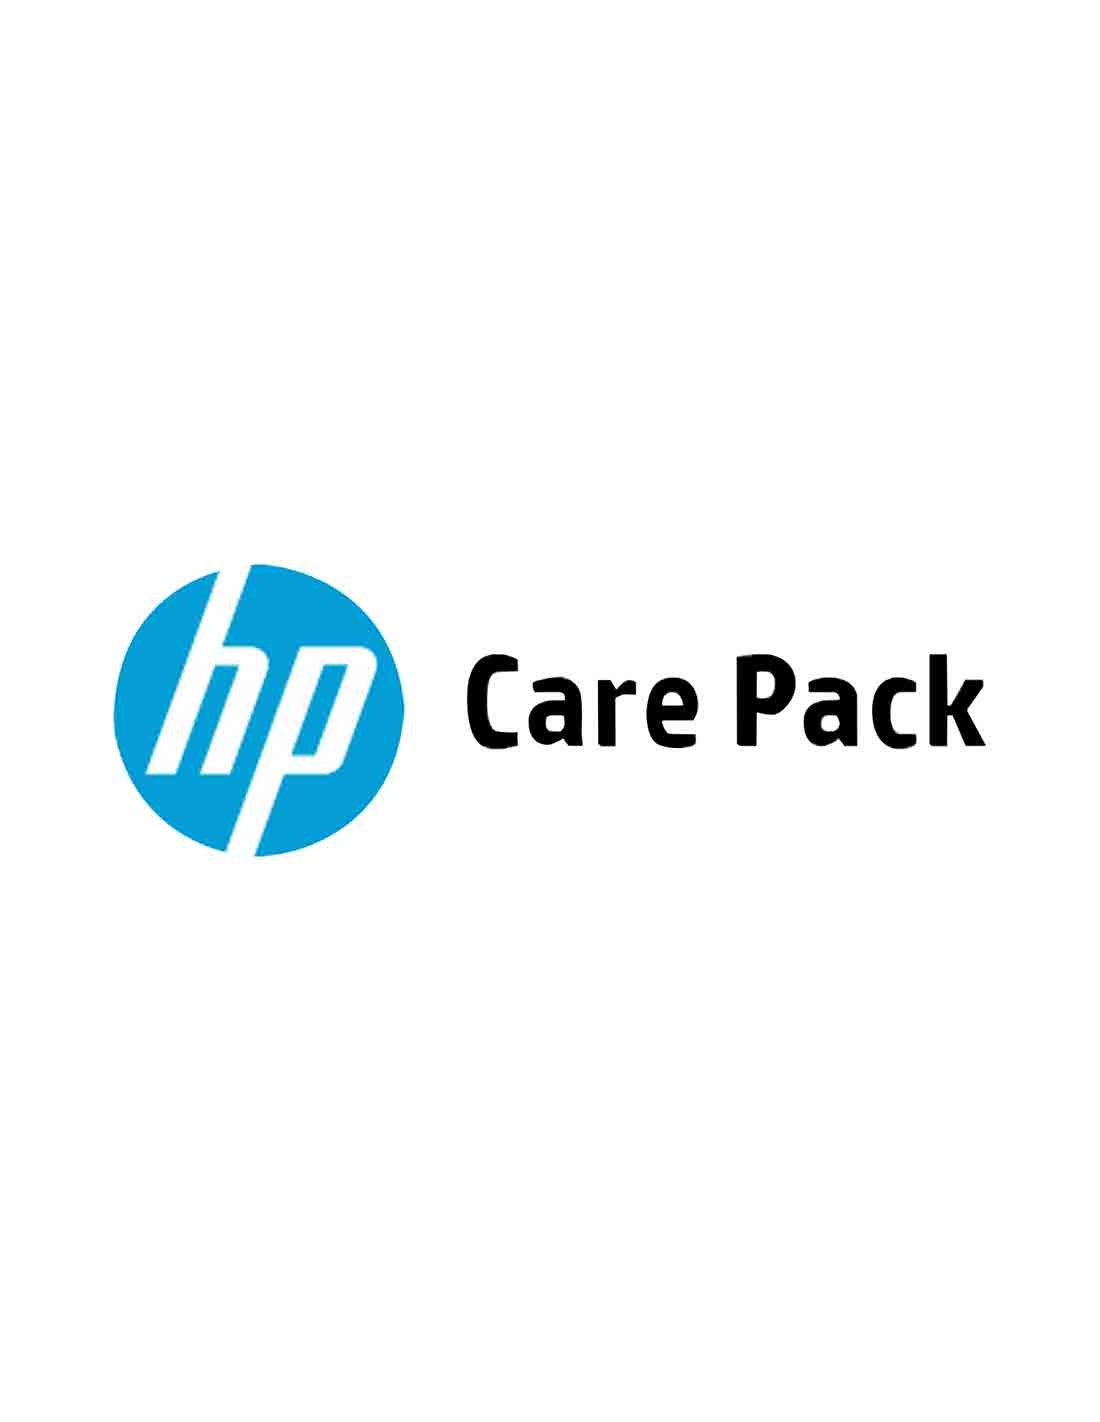 HP 3 year Next Business Day Onsite Hardware Support for Notebooks at a cheap price in Dubai